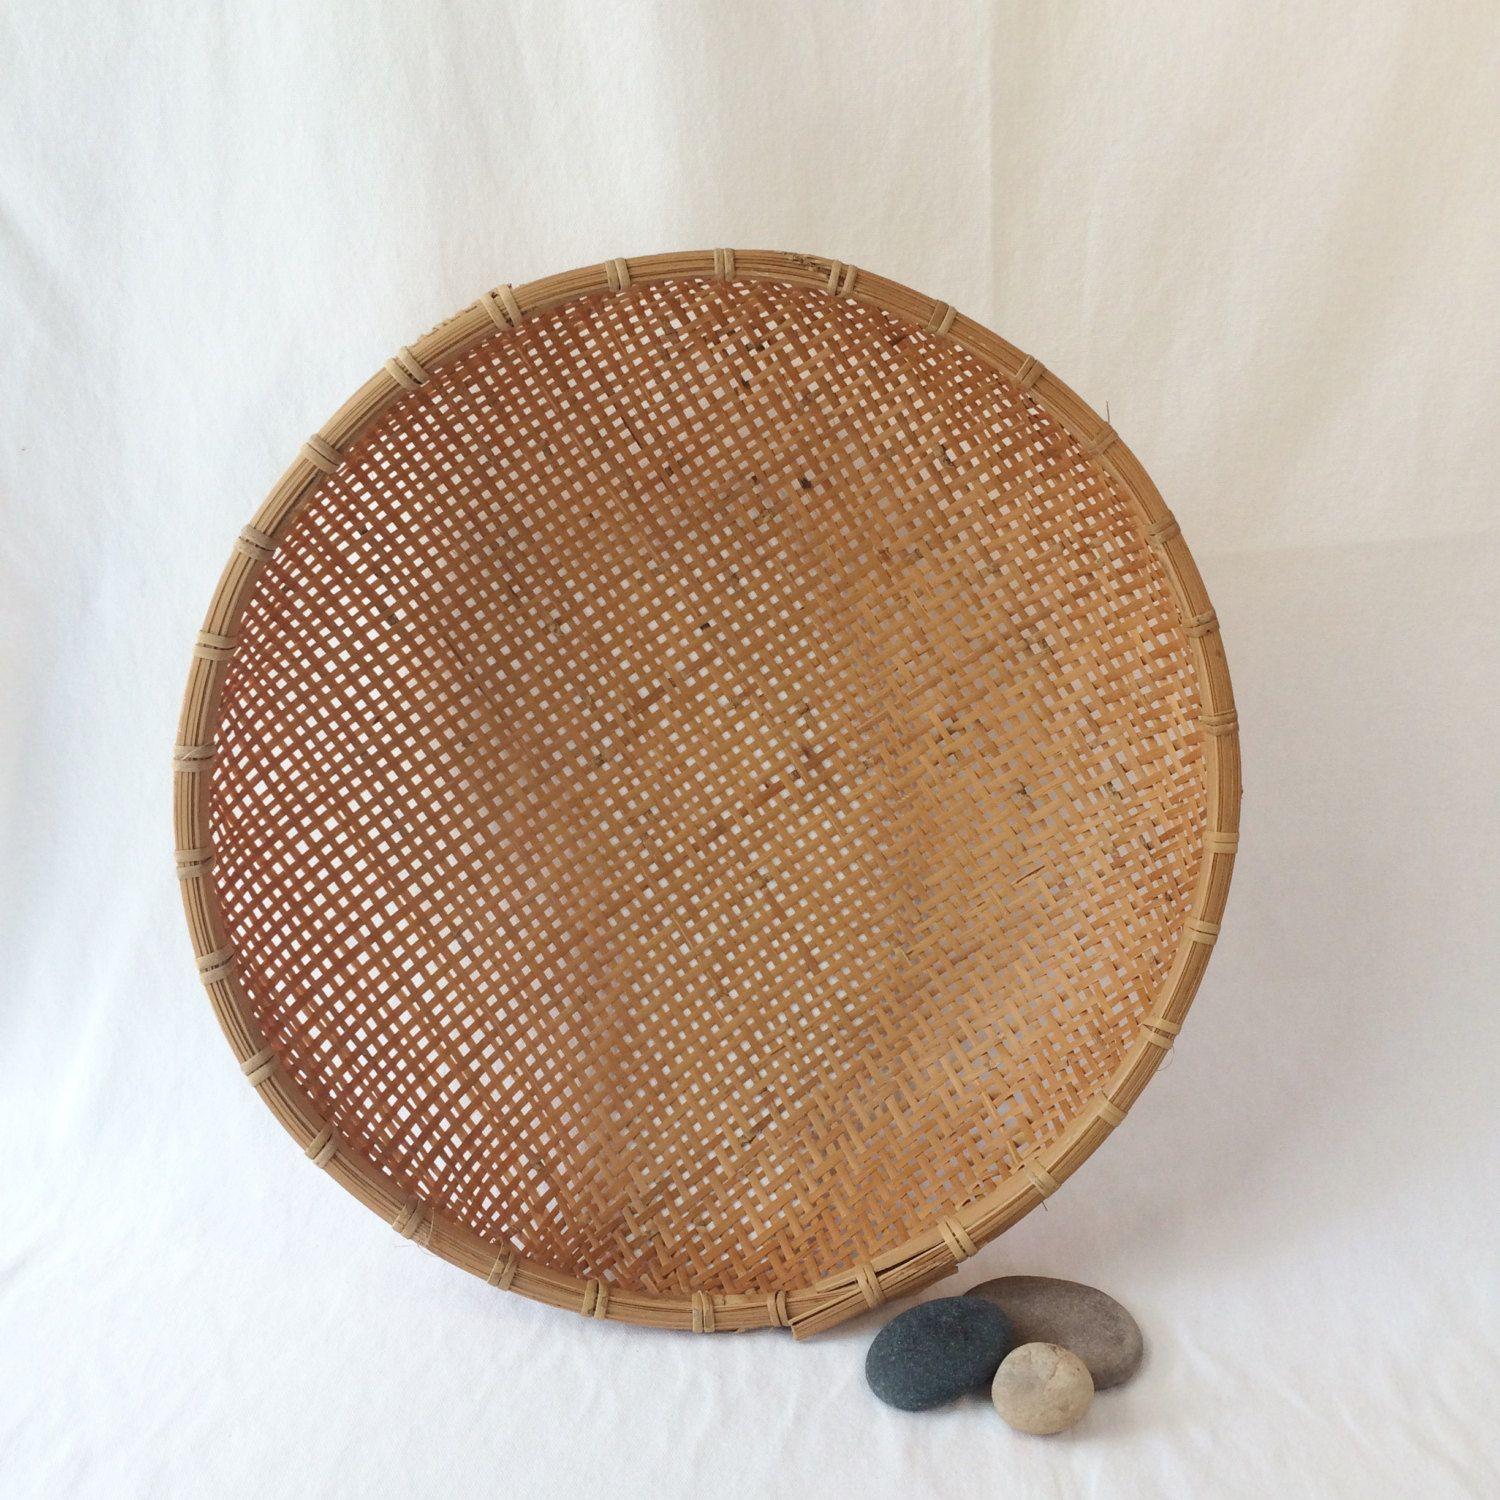 Vintage Round Rattan Basket, Large Wall Basket, Large